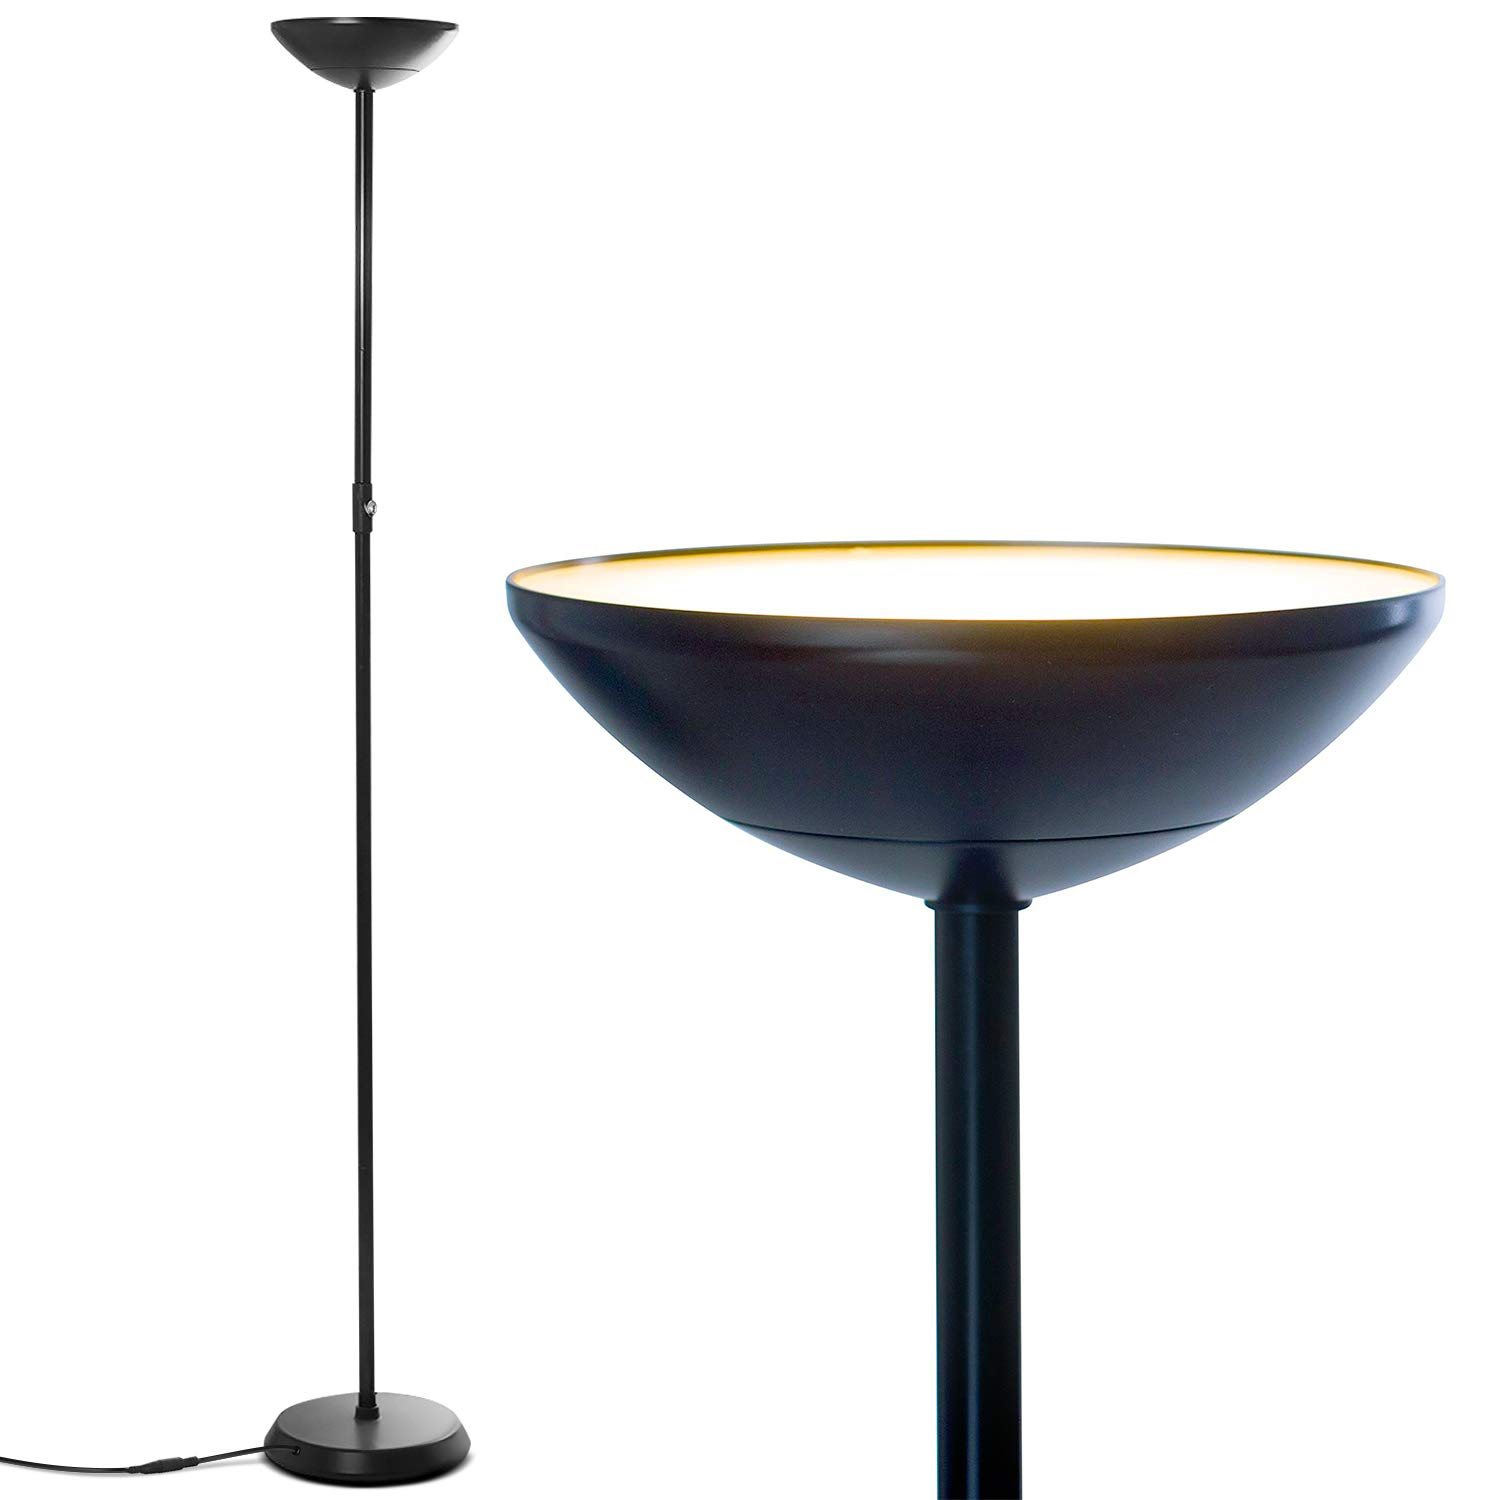 Brightech SkyLite - Bright LED Torchiere Floor Lamp for Offices – Modern, Dimmable Reading Light for Living Rooms & Bedrooms - Tall Standing Pole Light - Jet Black